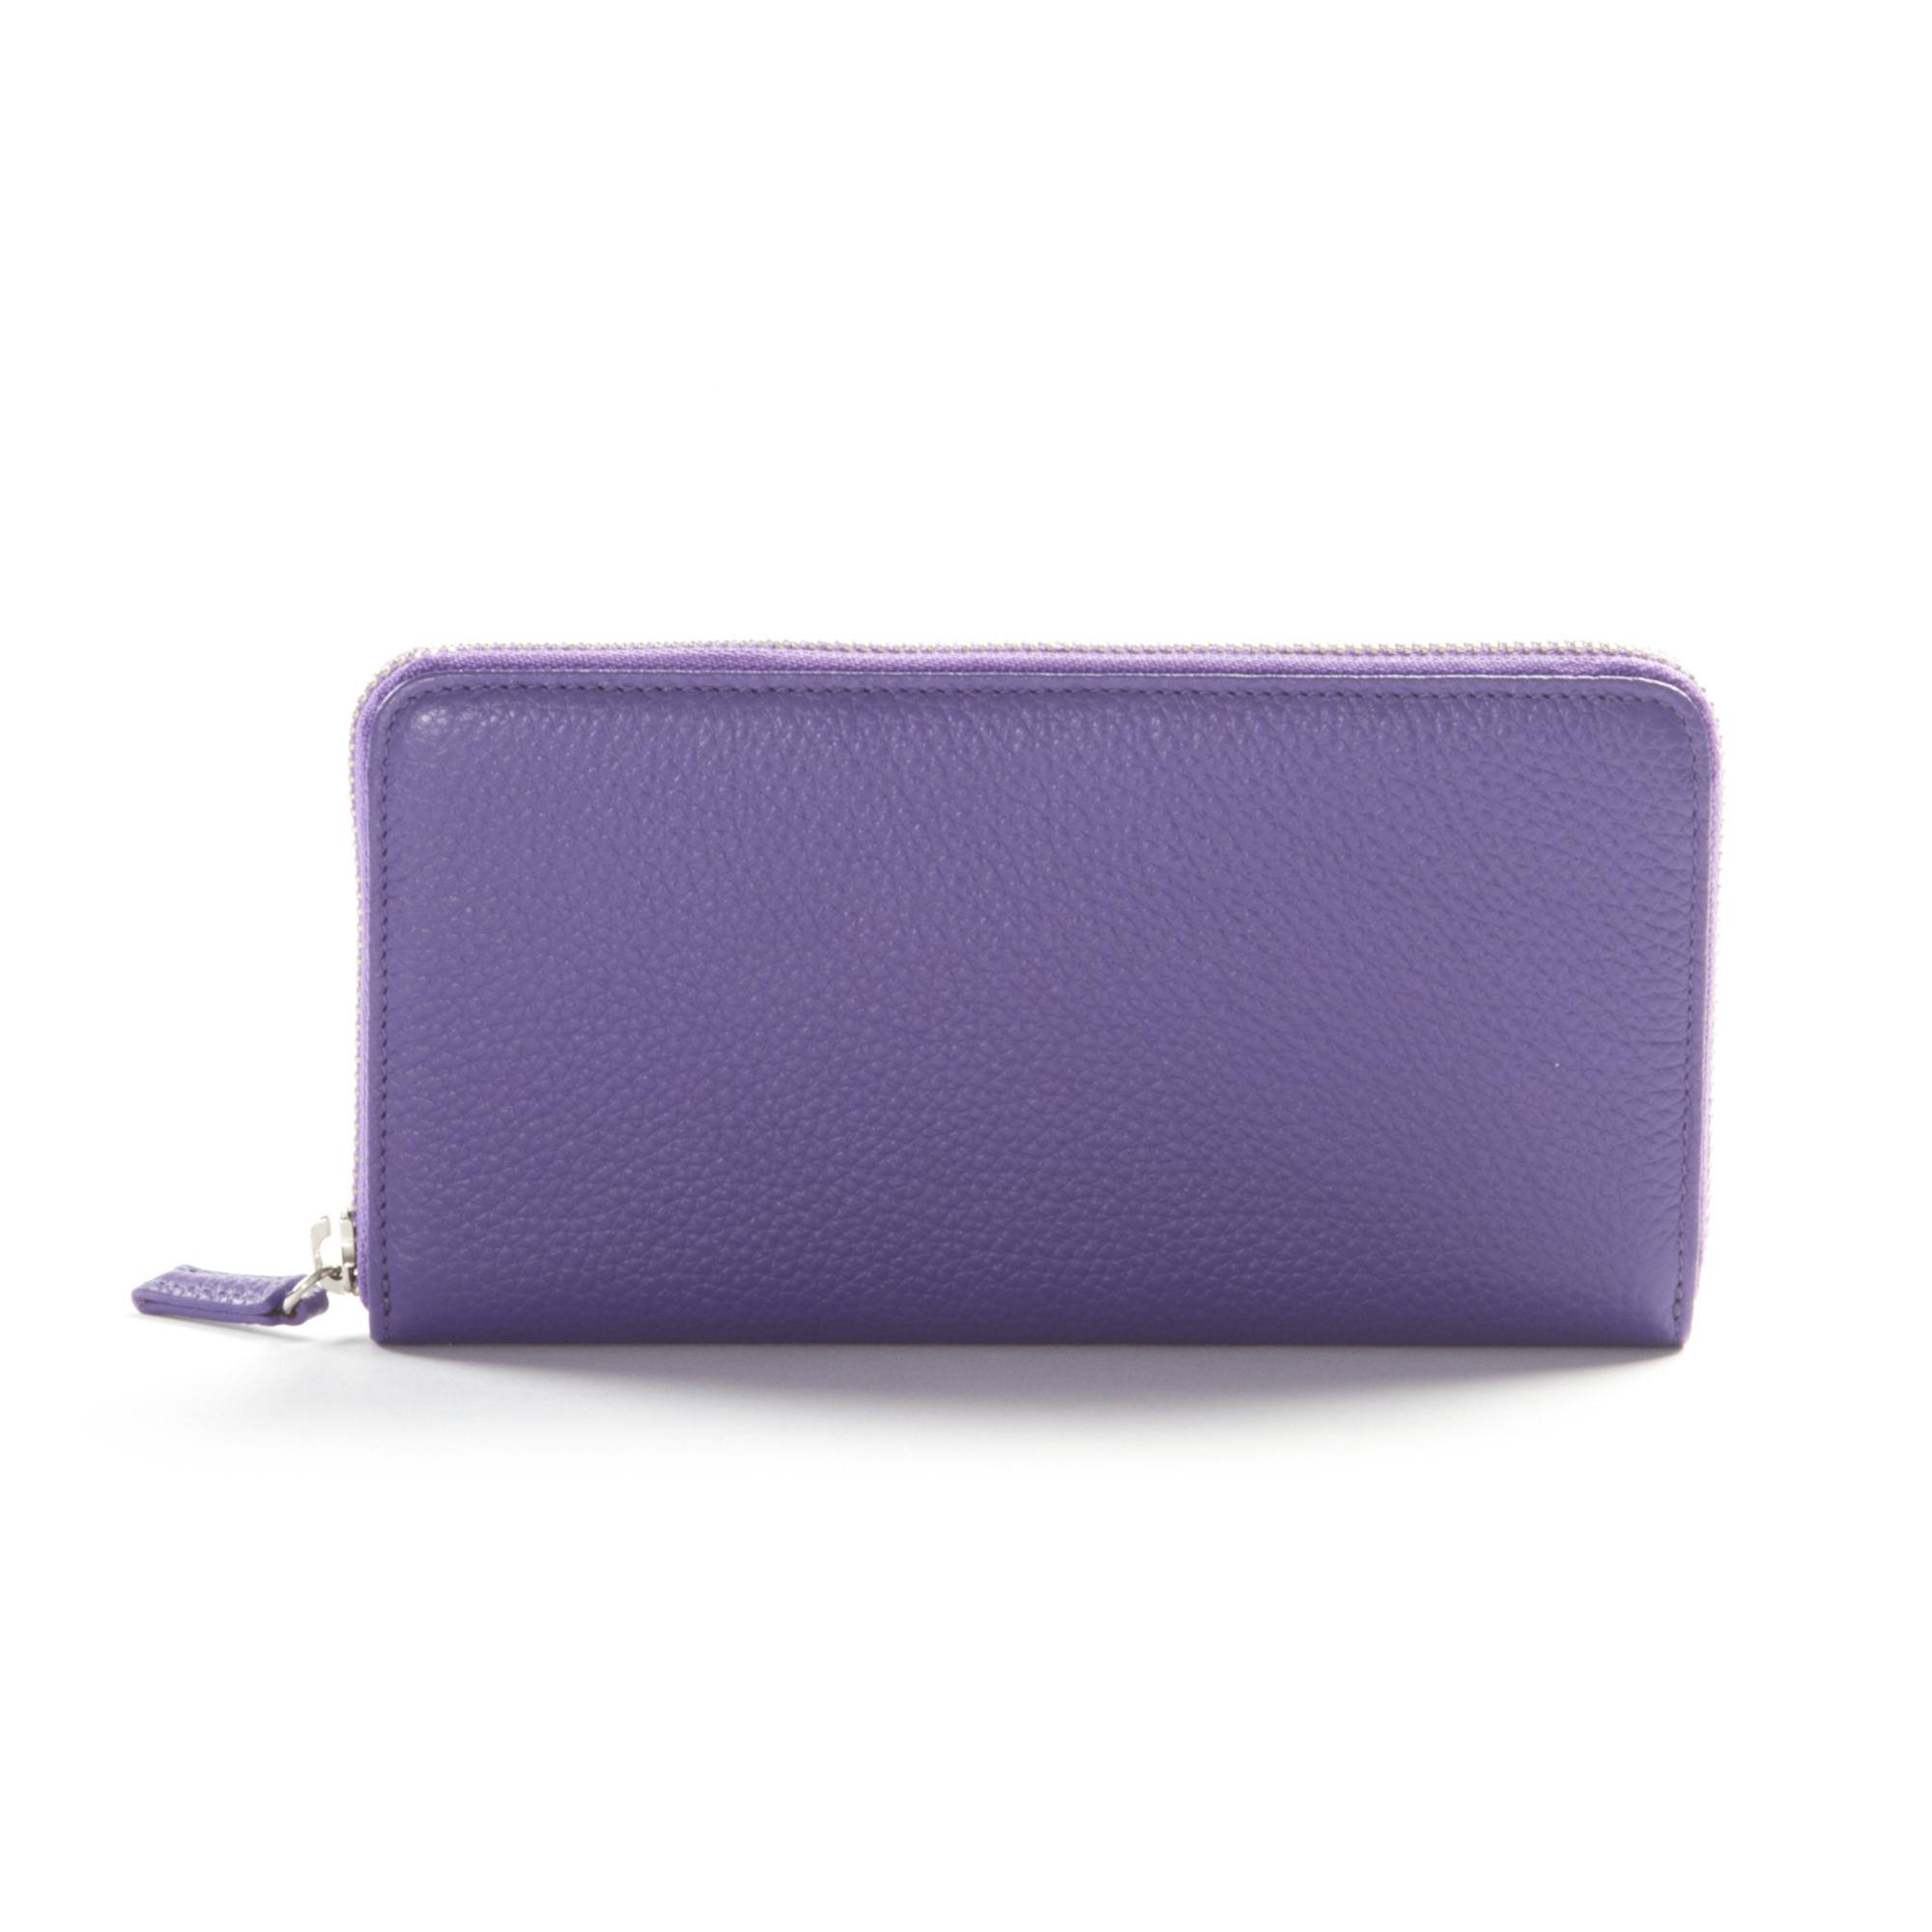 Zippered Continental Wallet - Full Grain Leather - Grape (purple)